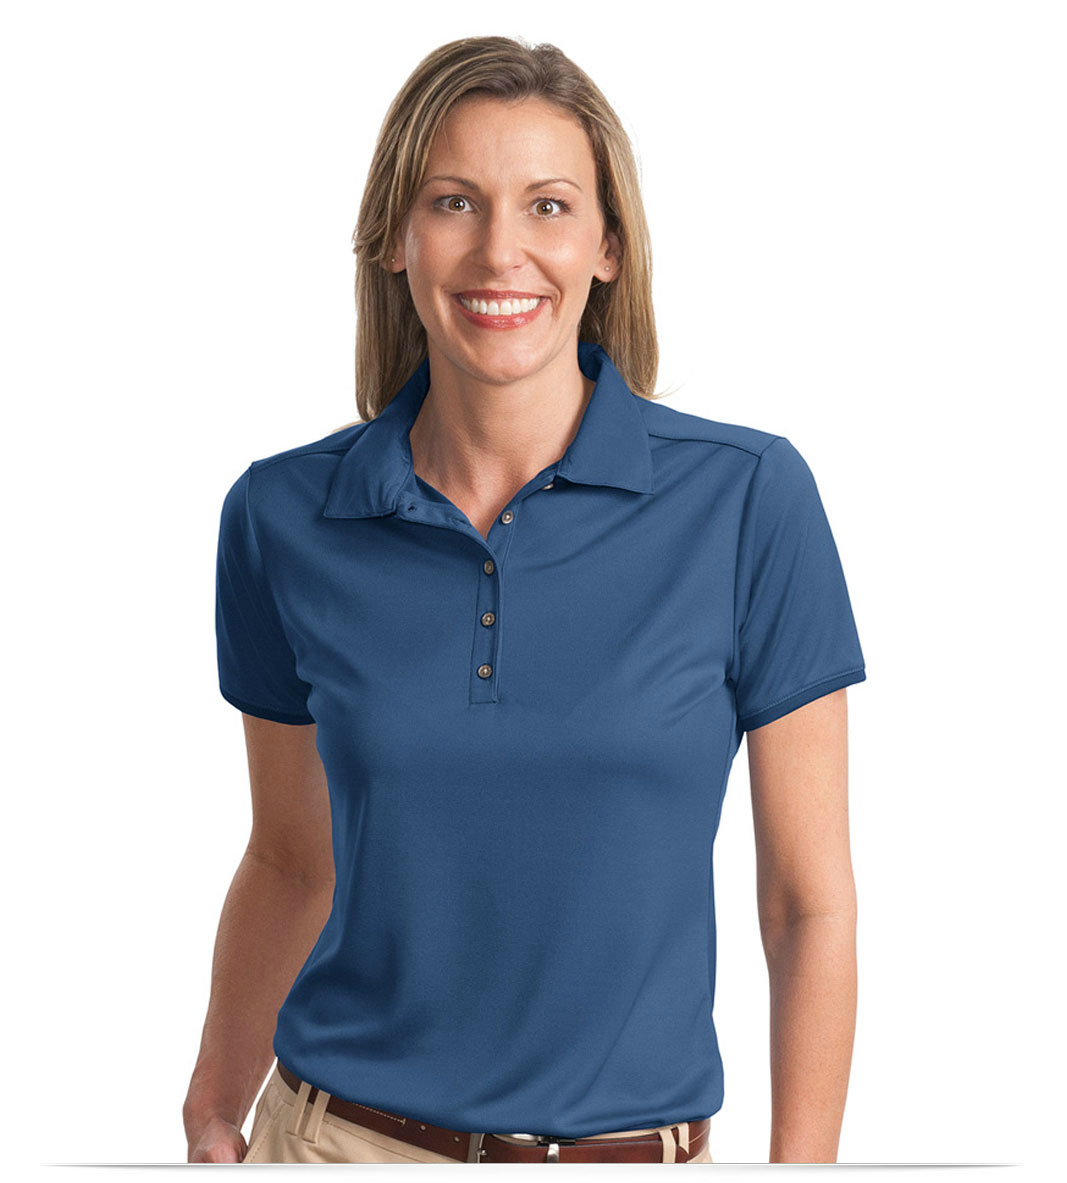 Design Embroidered Ladies Poly Bamboo Polo Online At Allstar Logo